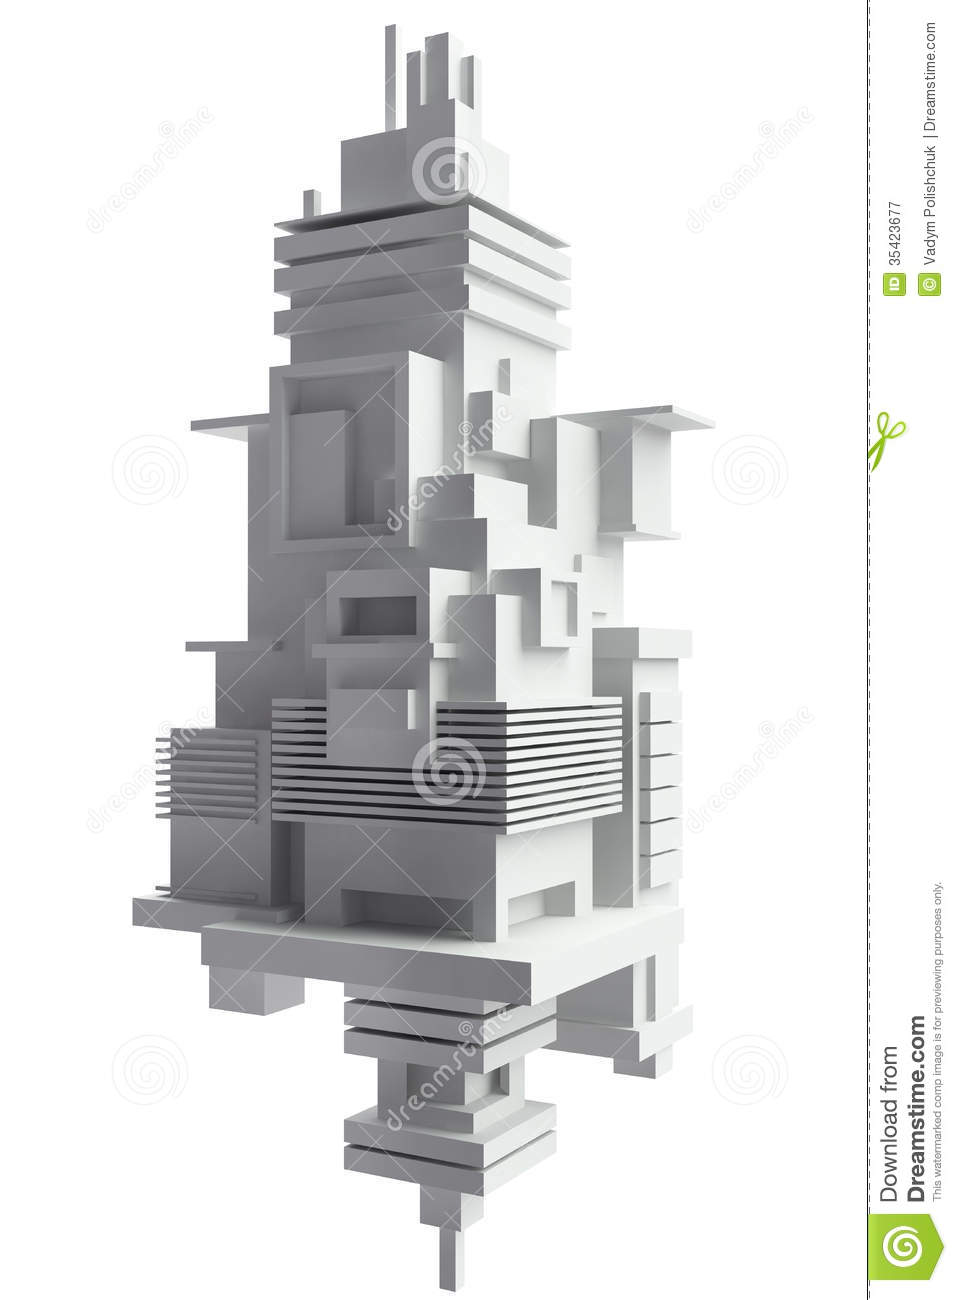 3d abstract architecture background stock illustration for Architecture simple